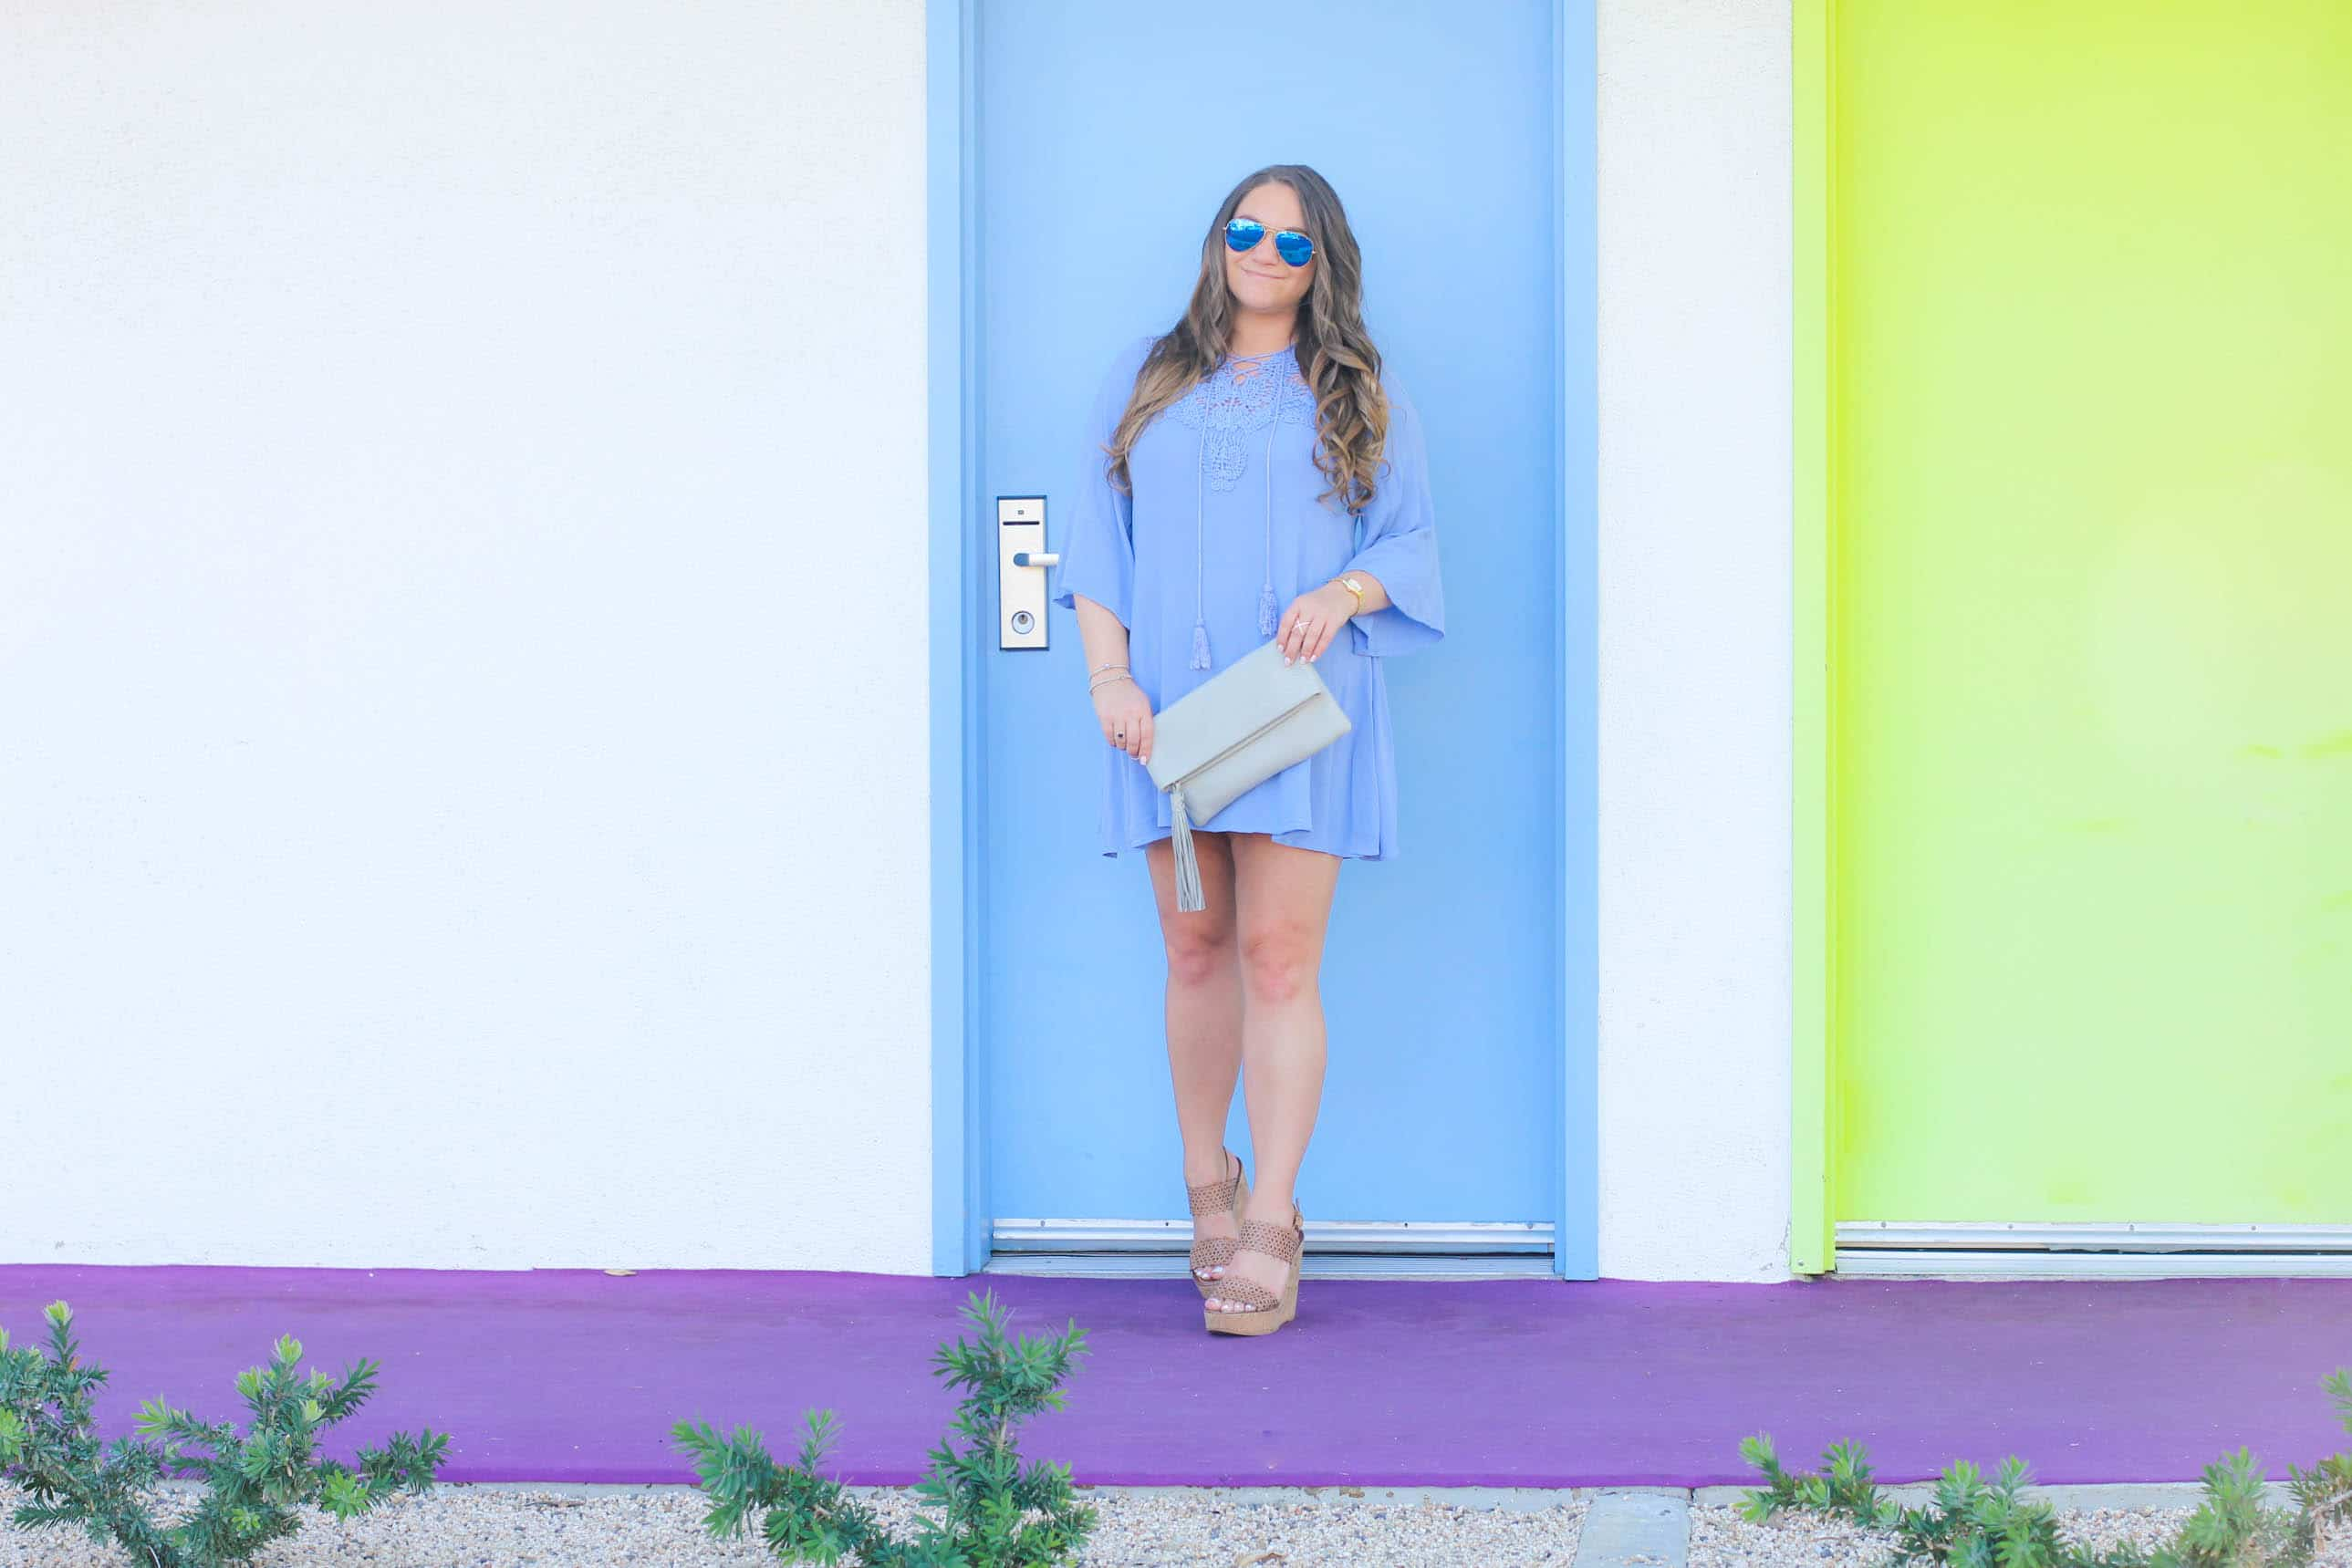 missyonmadison, missy on madison instagram, fashion blogger, la blogger, style blogger, outfit inspo, outfit goals, baby blue crochet dress, blue crochet dress, tory burch, tory burch wedges, perforated tan wedges, tan wedge sandals, gigi ny clutch, gigi ny gray bag, gigi ny gray clutch, spring style, spring style inspo, long sleeve crochet dress, ray bans, mirrored aviators, saguaro palm springs, saguaro hotel, palm springs style,